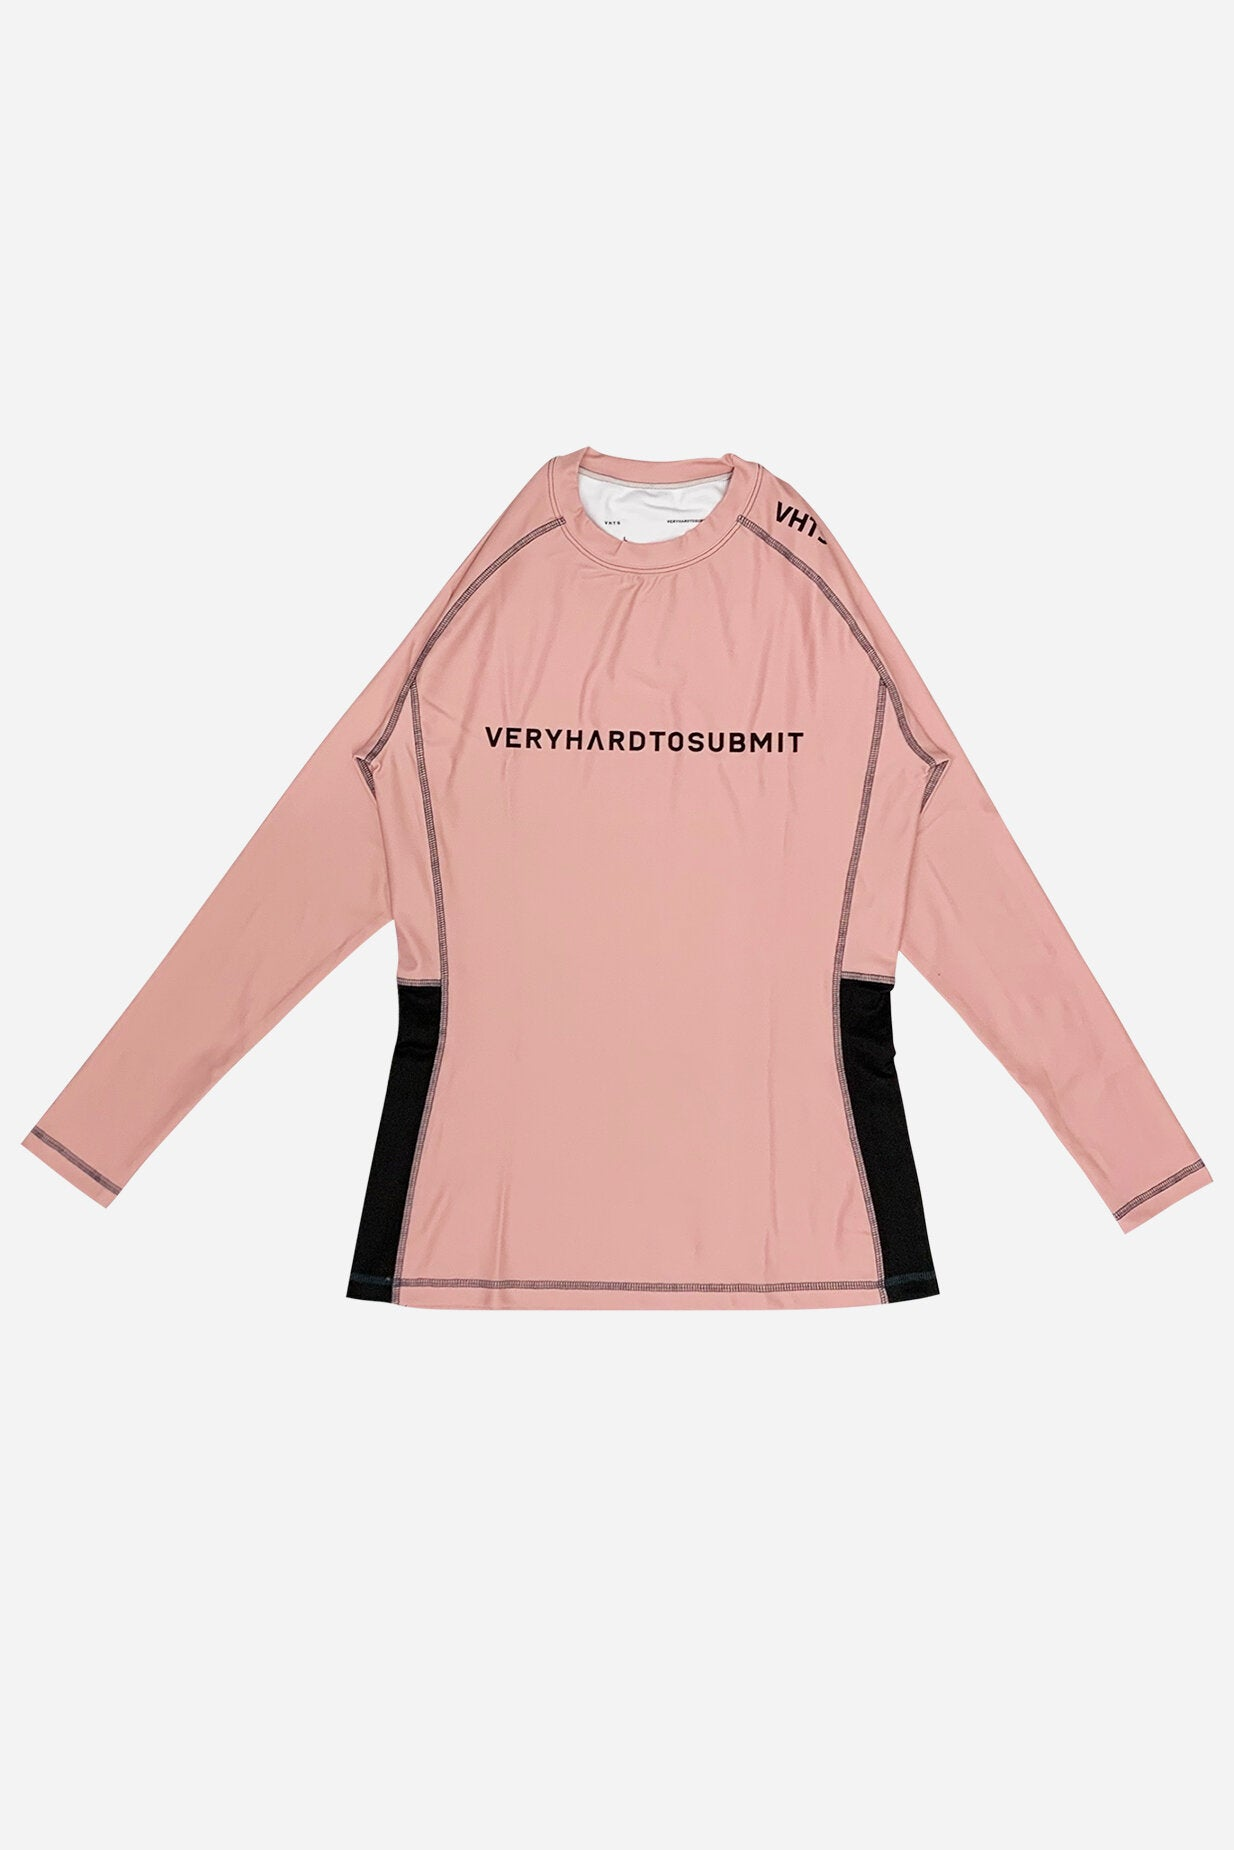 Pink (Female fitting) Long sleeves Rash Guard8 0% Polyester x 20% lycra   side mesh panel ventilation system  contrast stitching  sublimation printing  Female body type fitting vhts europe